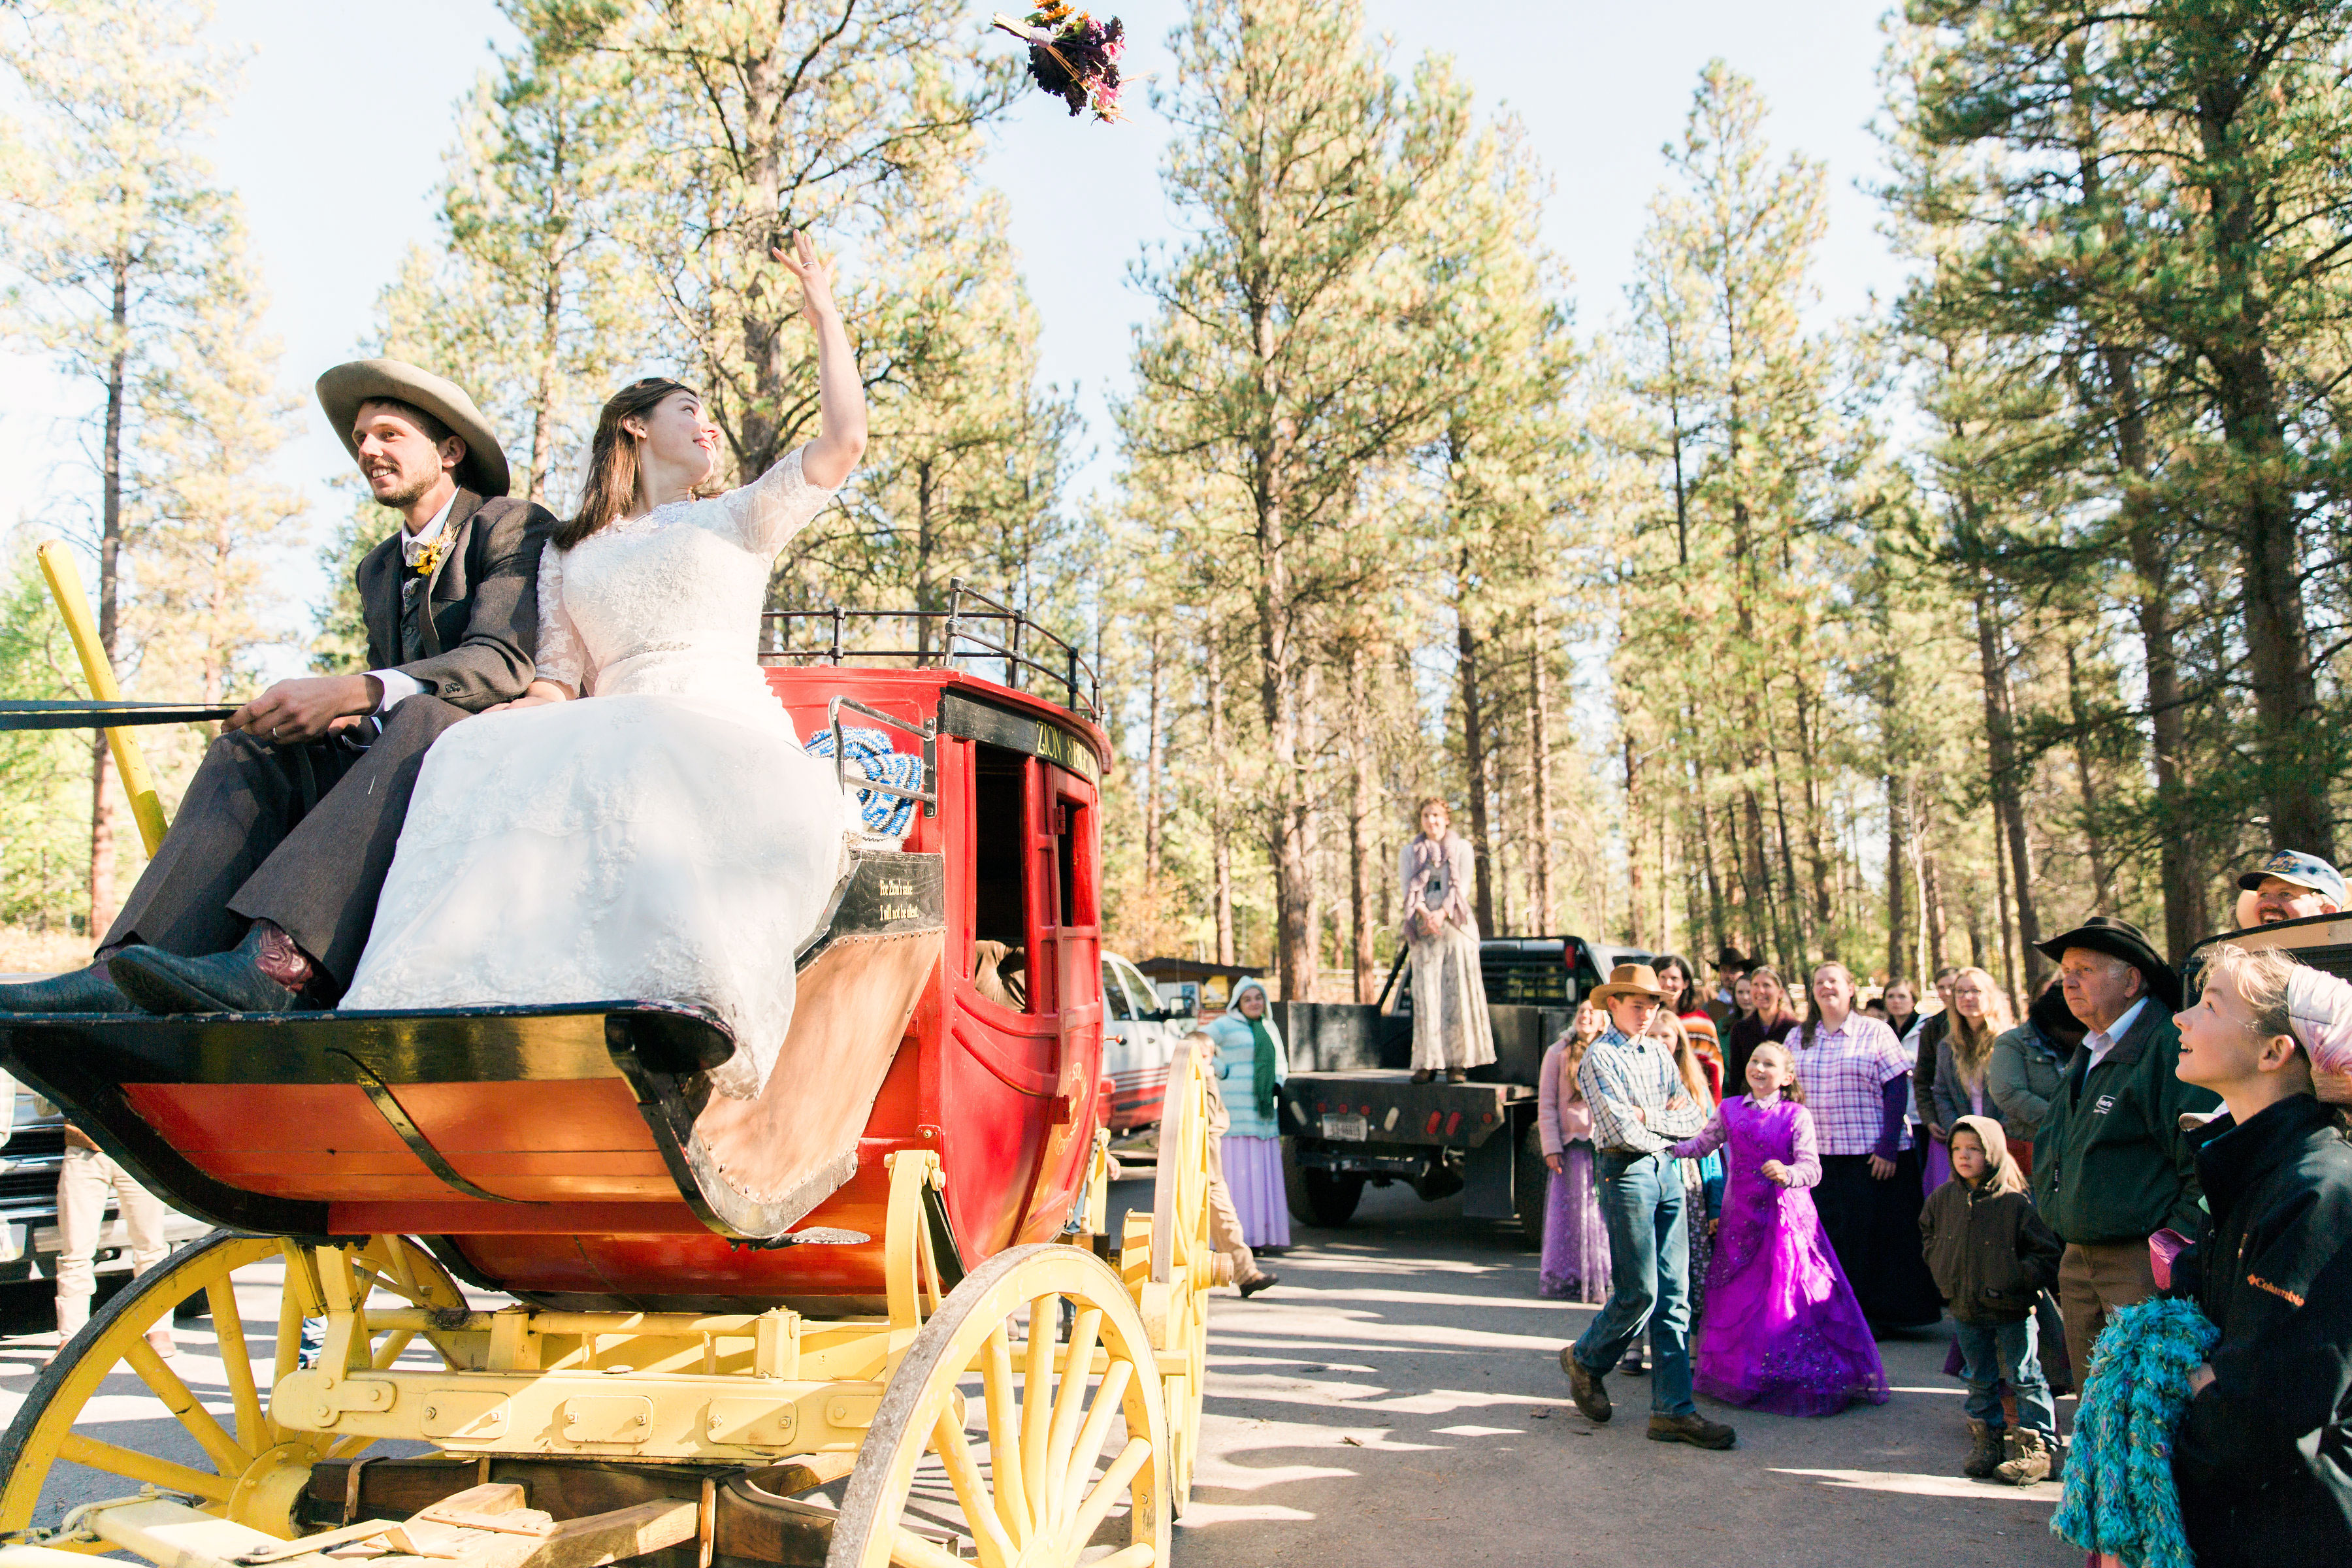 Stagecoach Wedding Backdrop Photos with Zion Stage Line